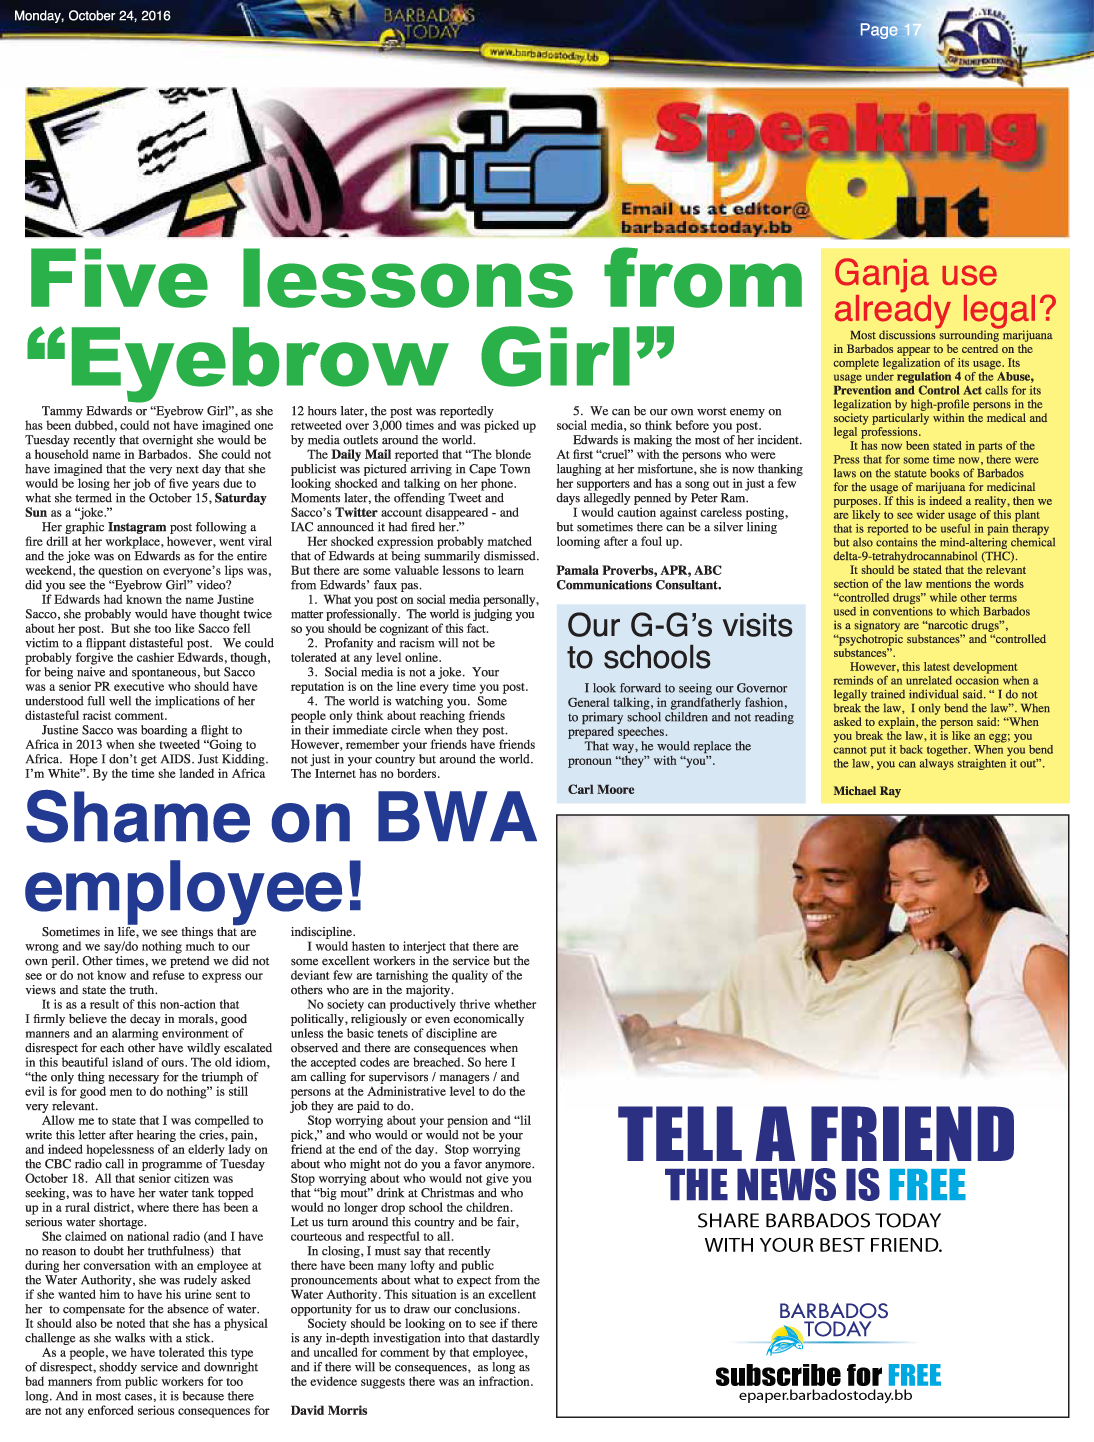 5 Lessons to learn from Barbados's eyebrow girl by Pamala Proverbs director of PRMR Inc.